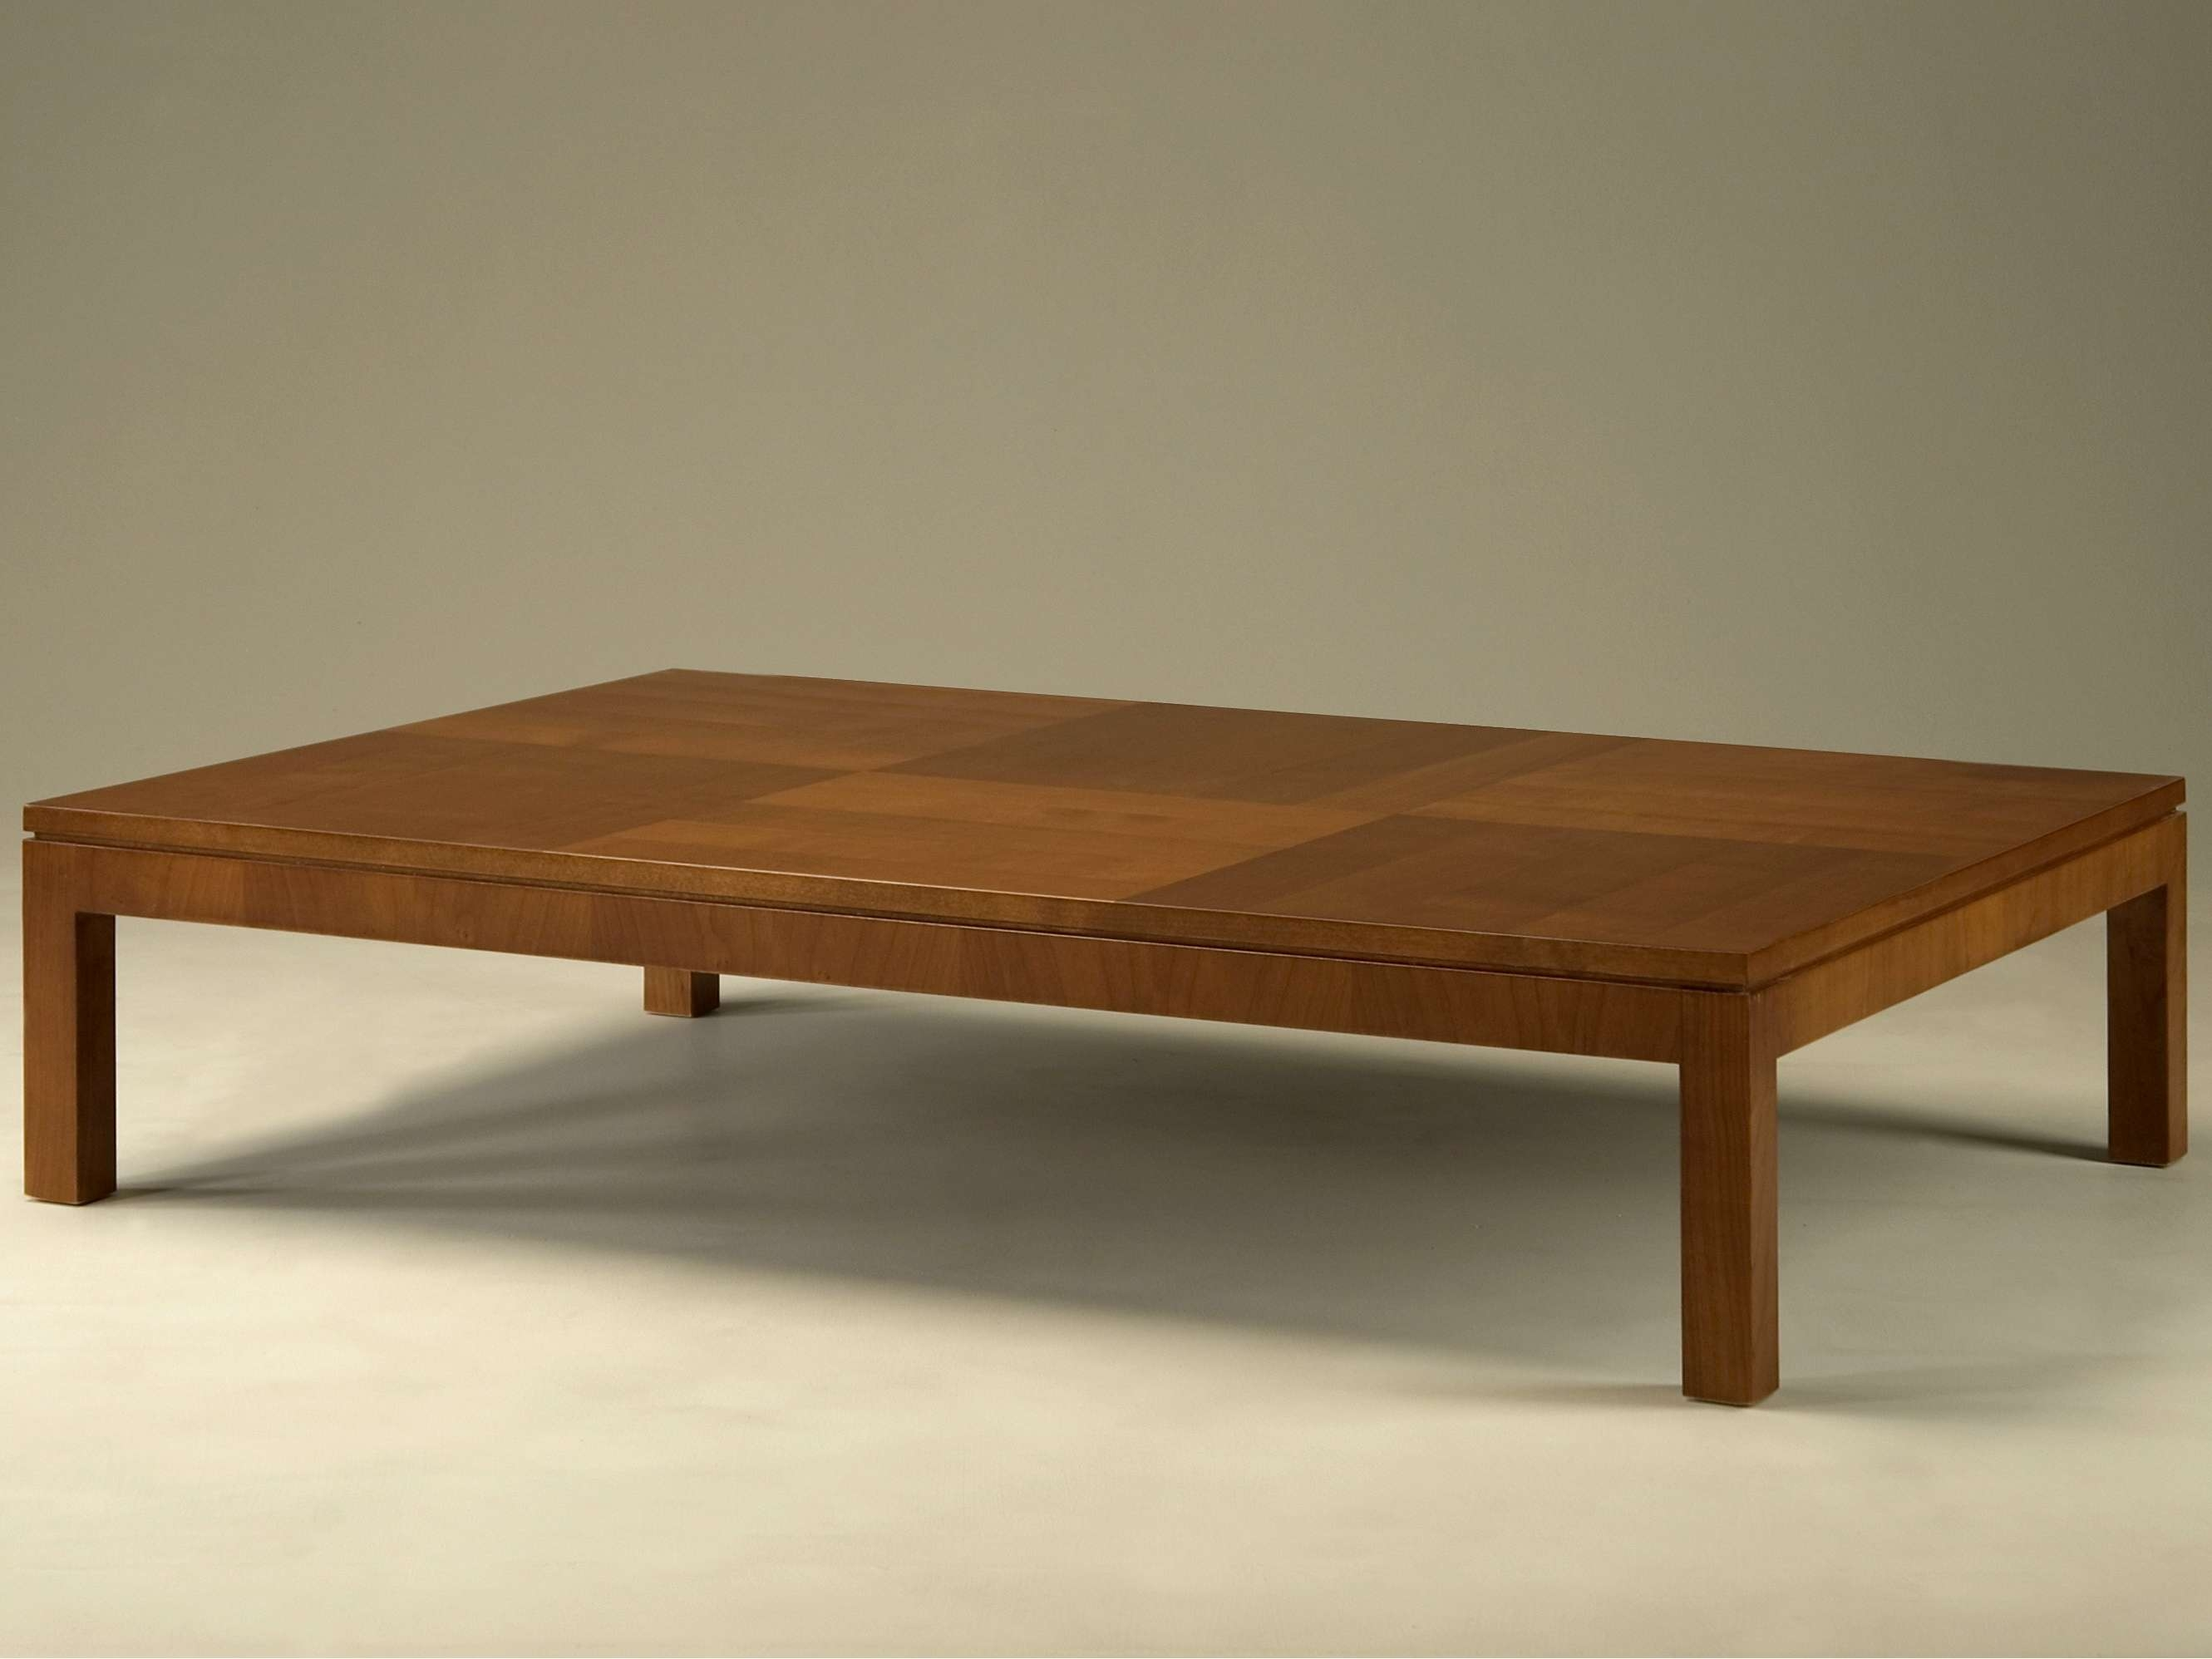 Newest Low Square Wooden Coffee Tables Regarding Coffee Table : Wonderful Square Coffee Table Large Square Coffee (View 3 of 20)